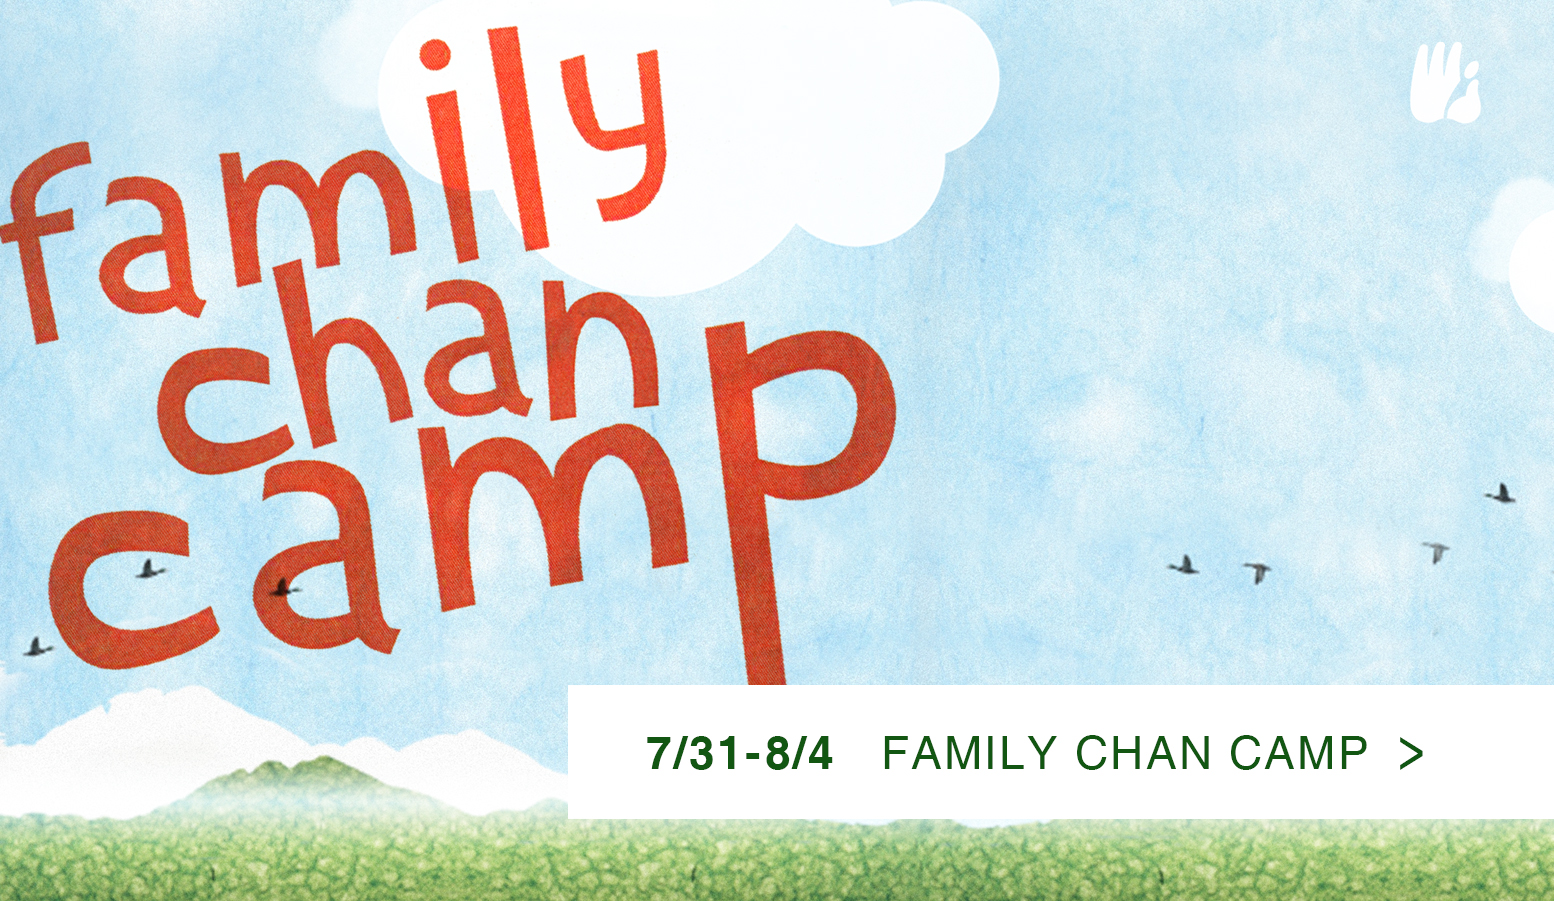 2019 Fmaily Chan Camp